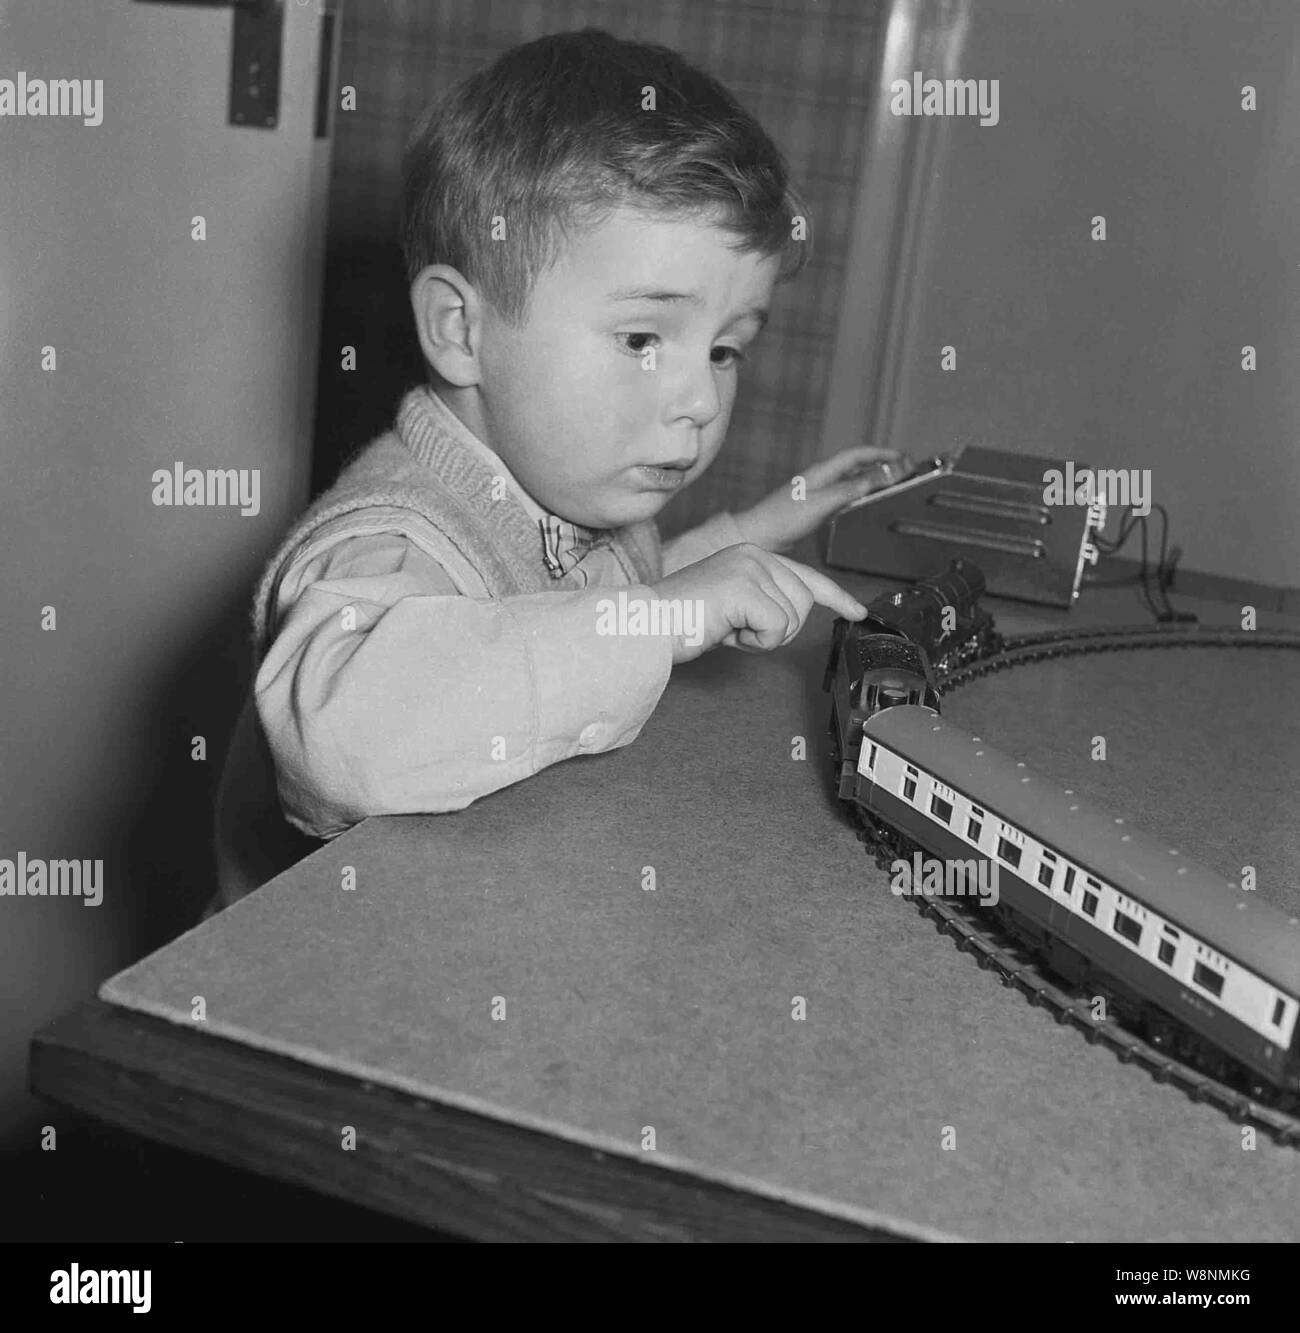 1950s, historical, smartly dressed little boy wearing a bow tie playing with his electric model train set, Engalnd, UK. Stock Photo